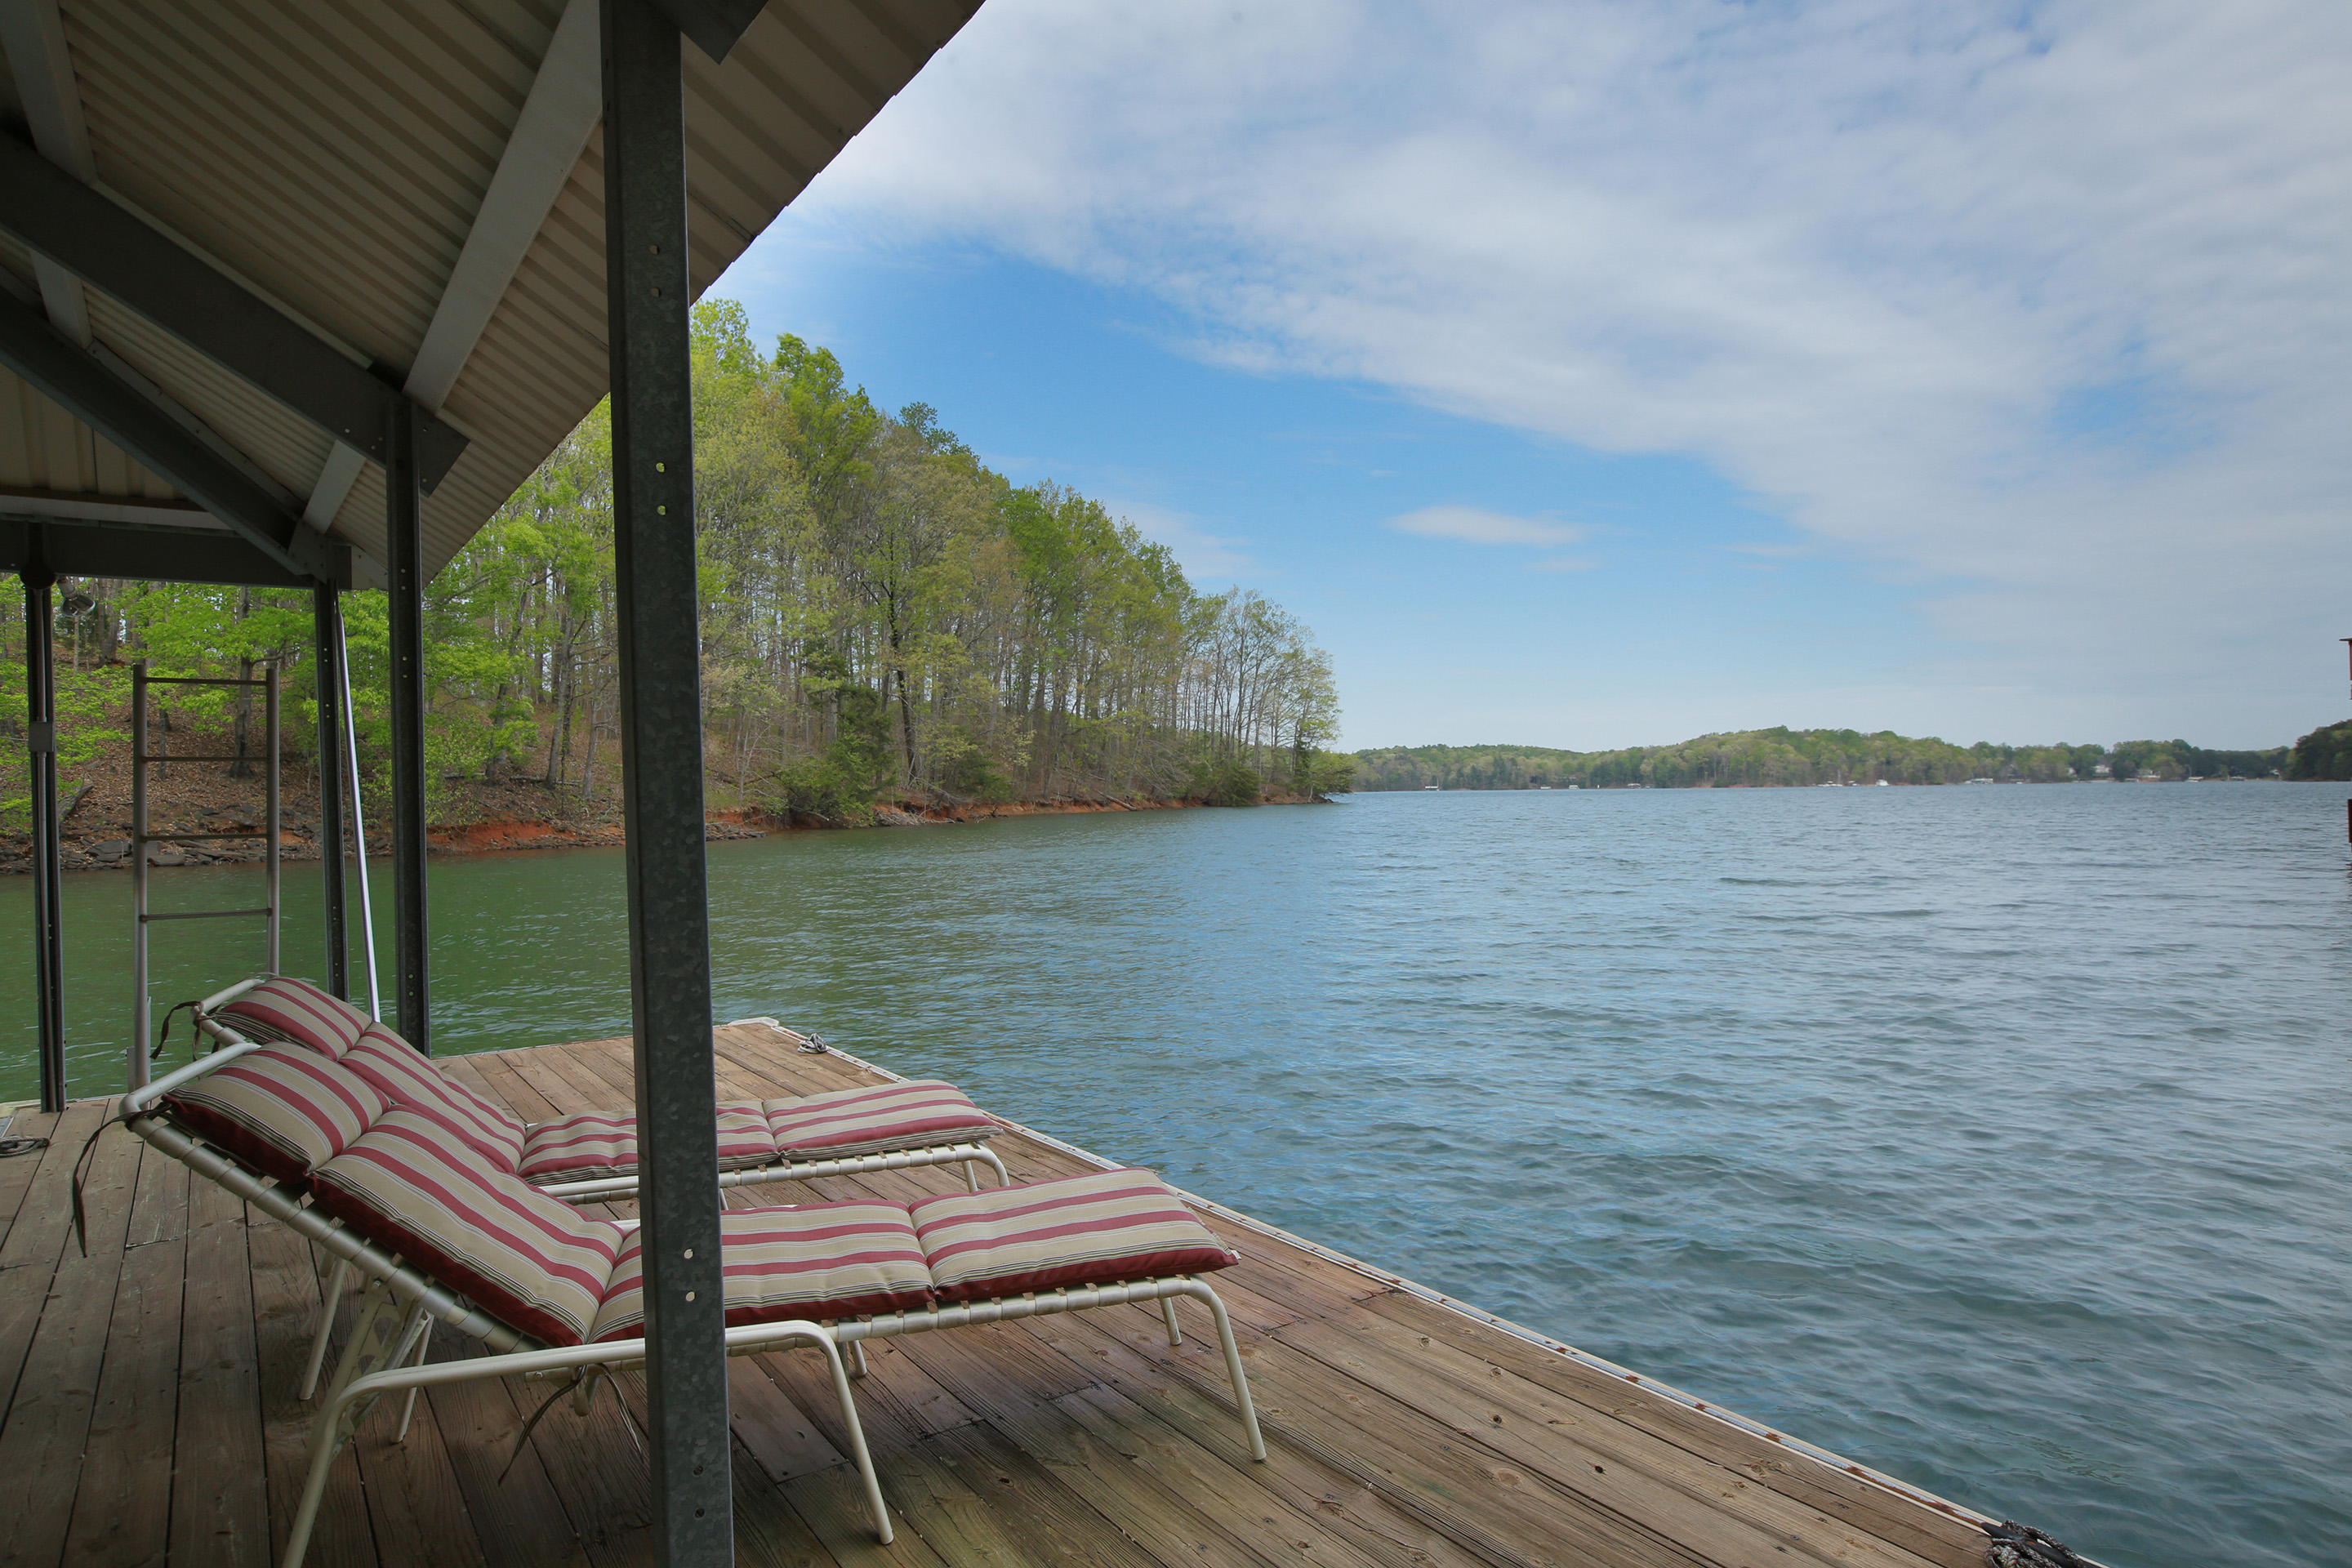 Single Family Home for Sale at Great Water Views, Deep Water Dock, Impeccably Maintained and Dearly Loved 7545 Breeze Overlook Cumming, Georgia, 30041 United States